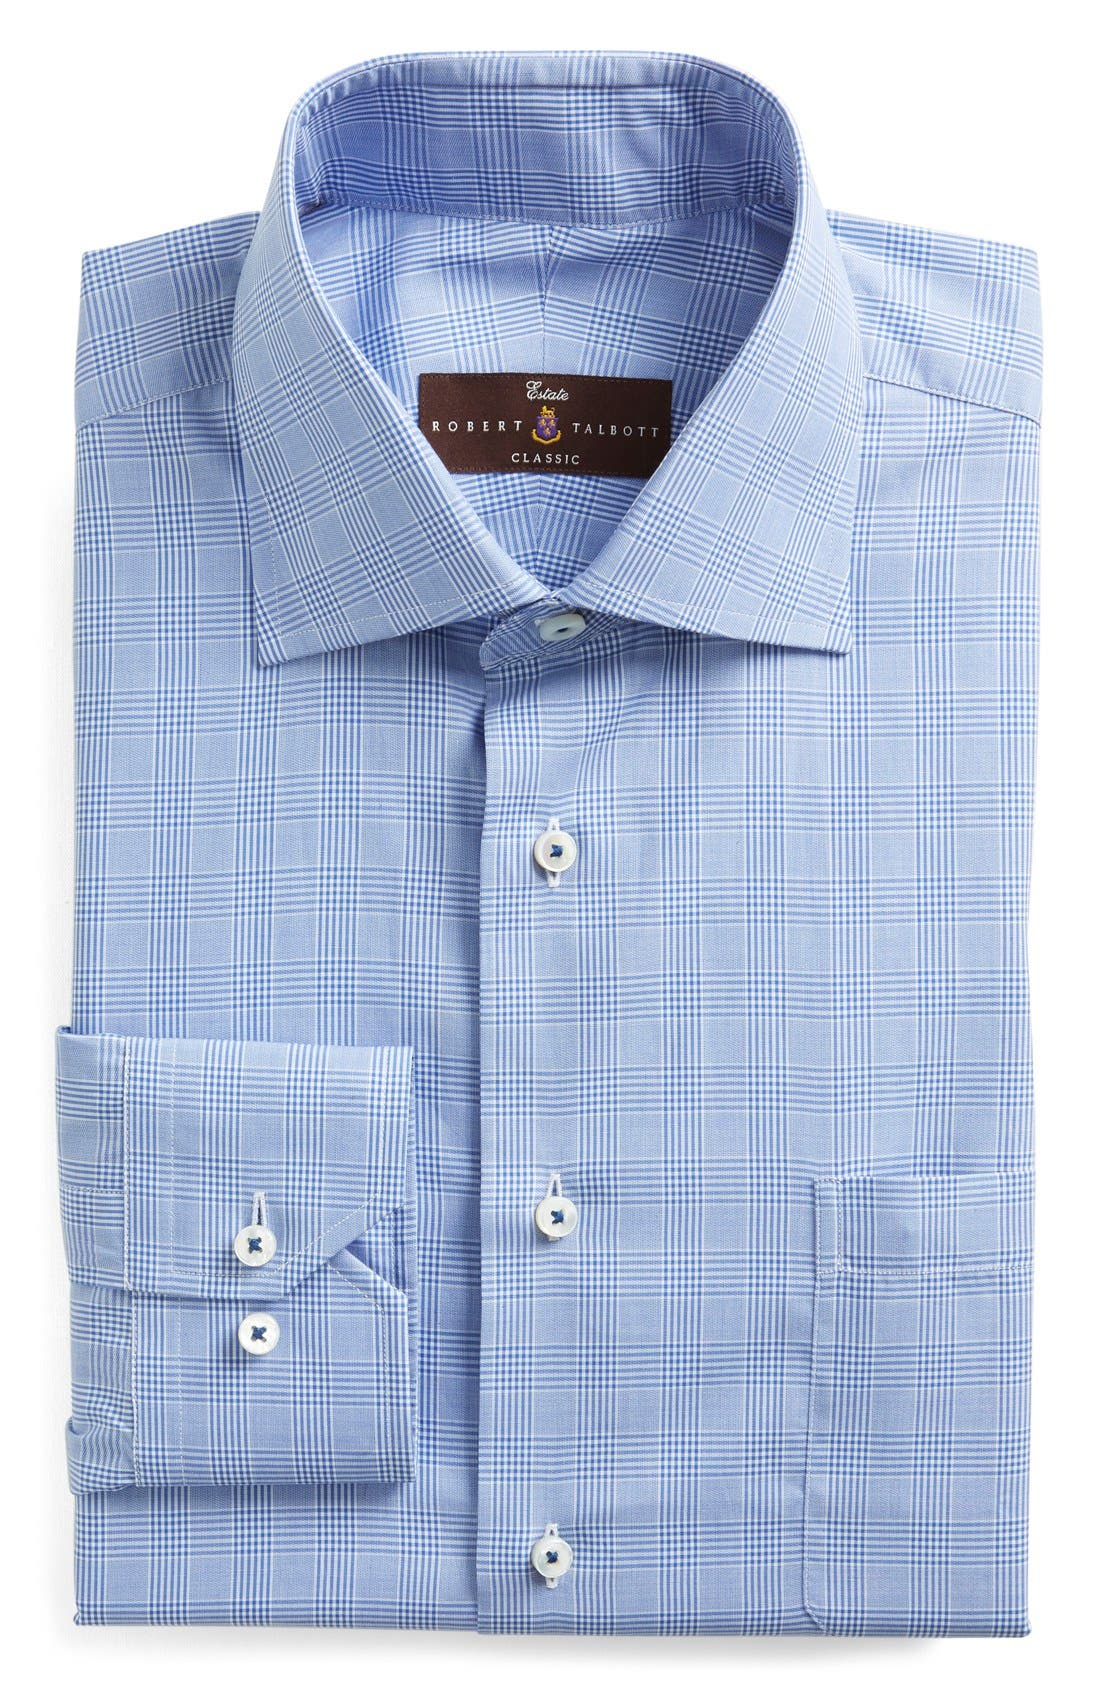 Robert Talbott Classic Fit Check Dress Shirt